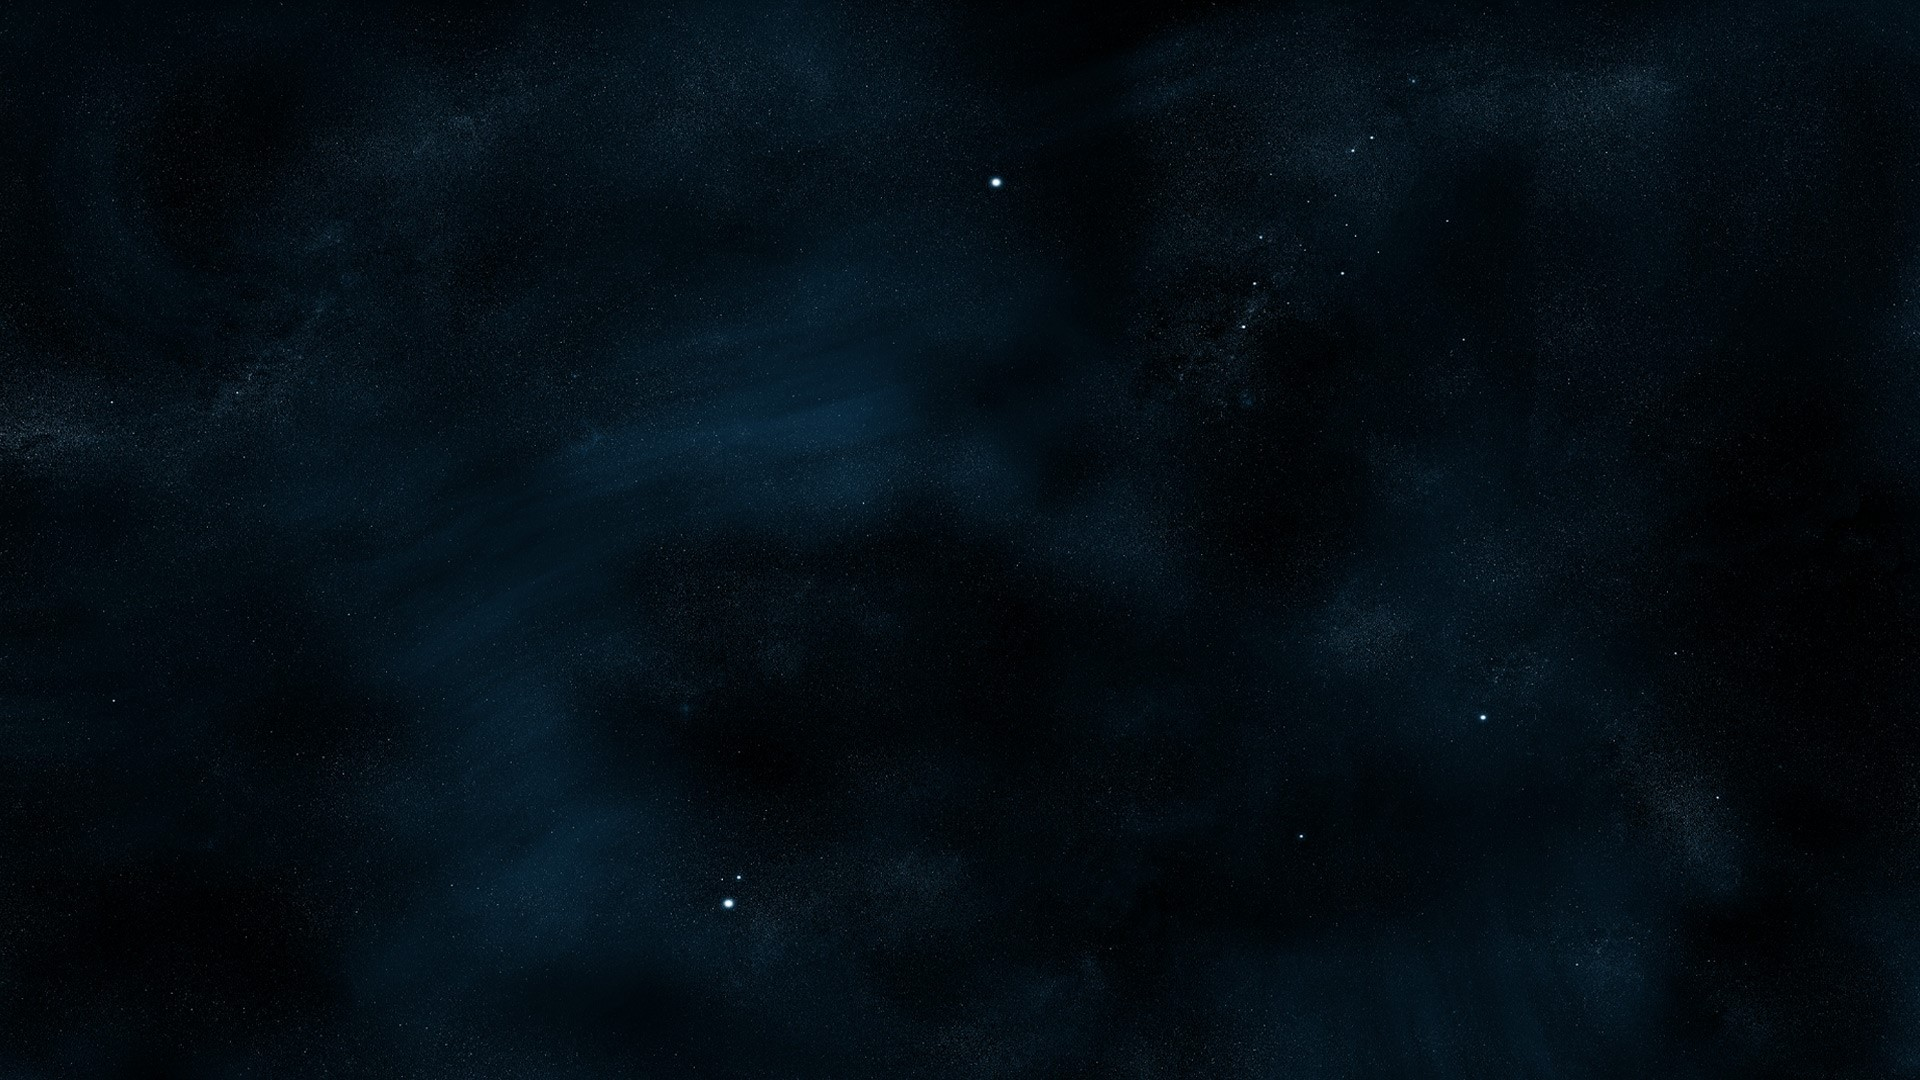 Wallpaper Interstellar space - Universe